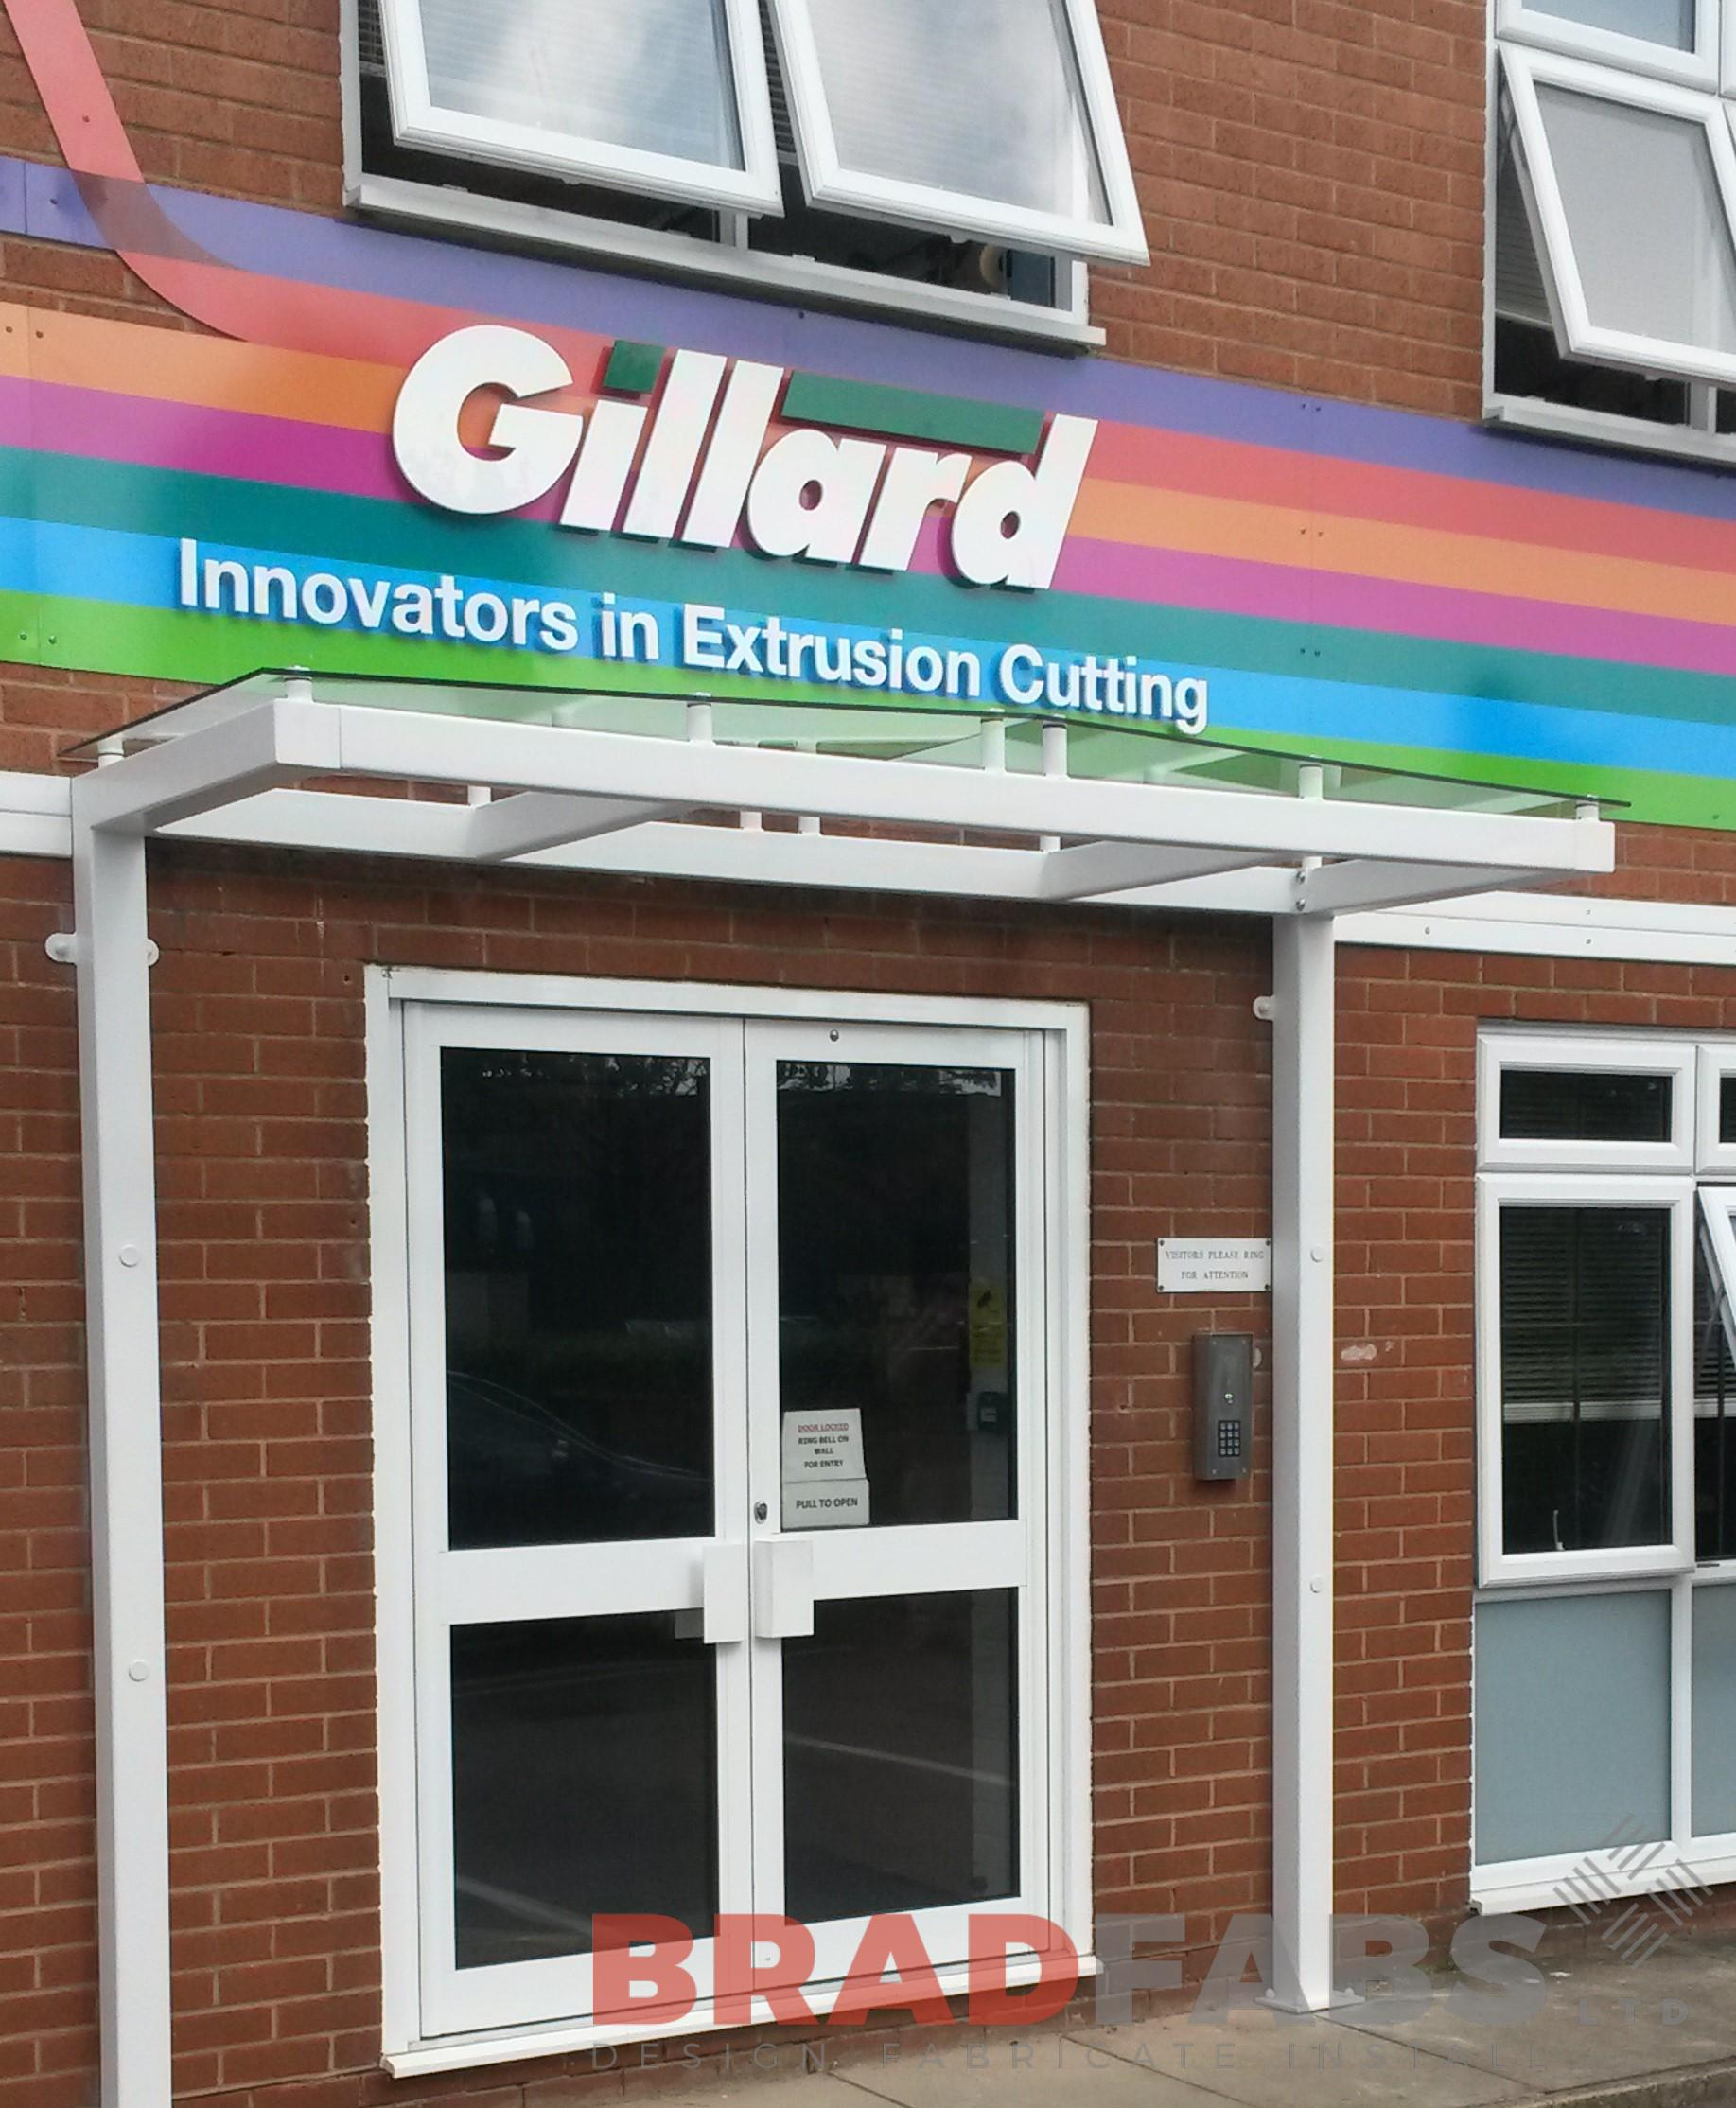 Improve the look of your business entrance with a Bradfabs Canopy